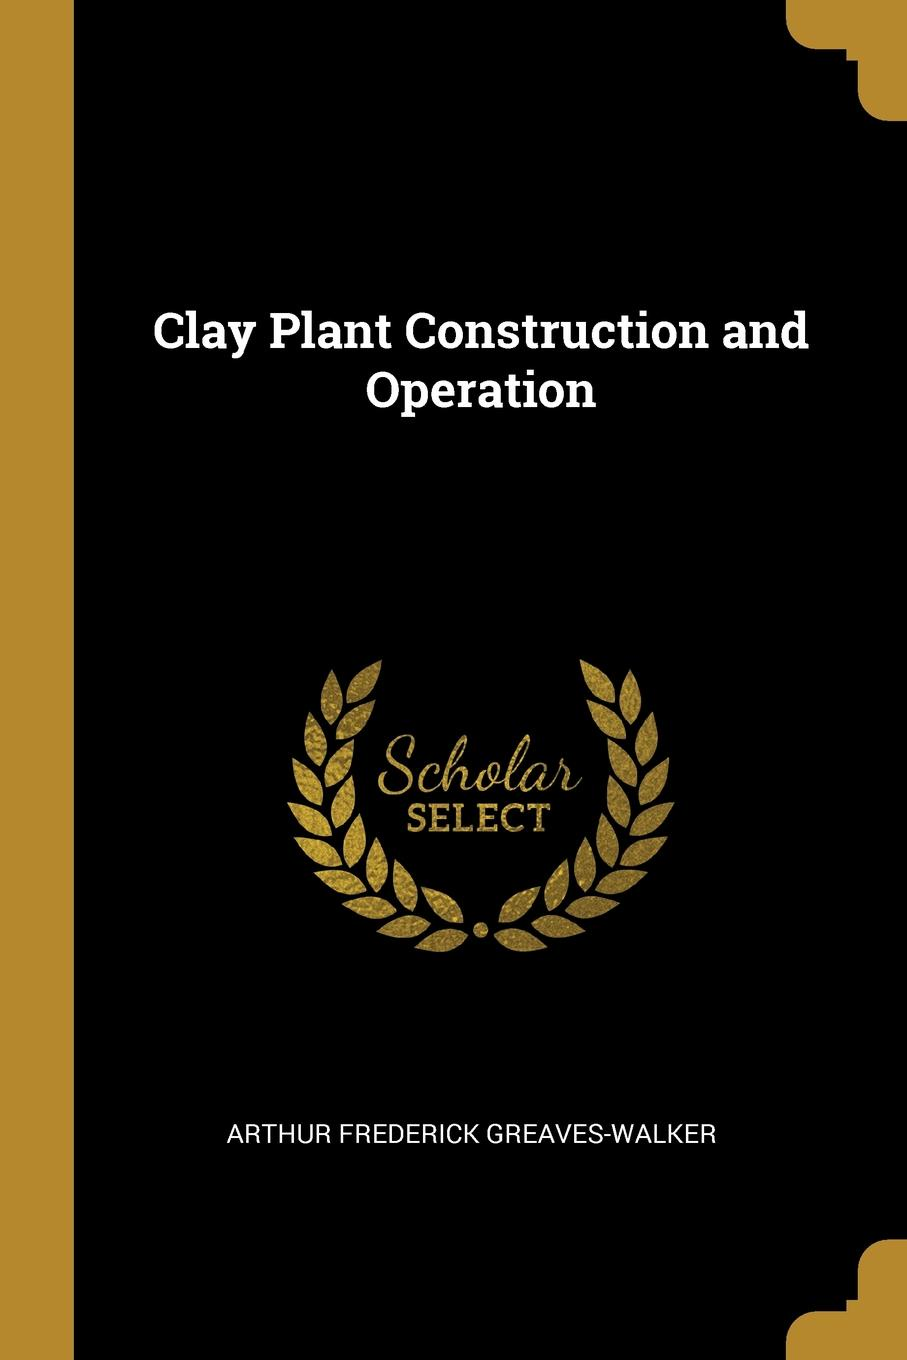 Arthur Frederick Greaves-Walker. Clay Plant Construction and Operation